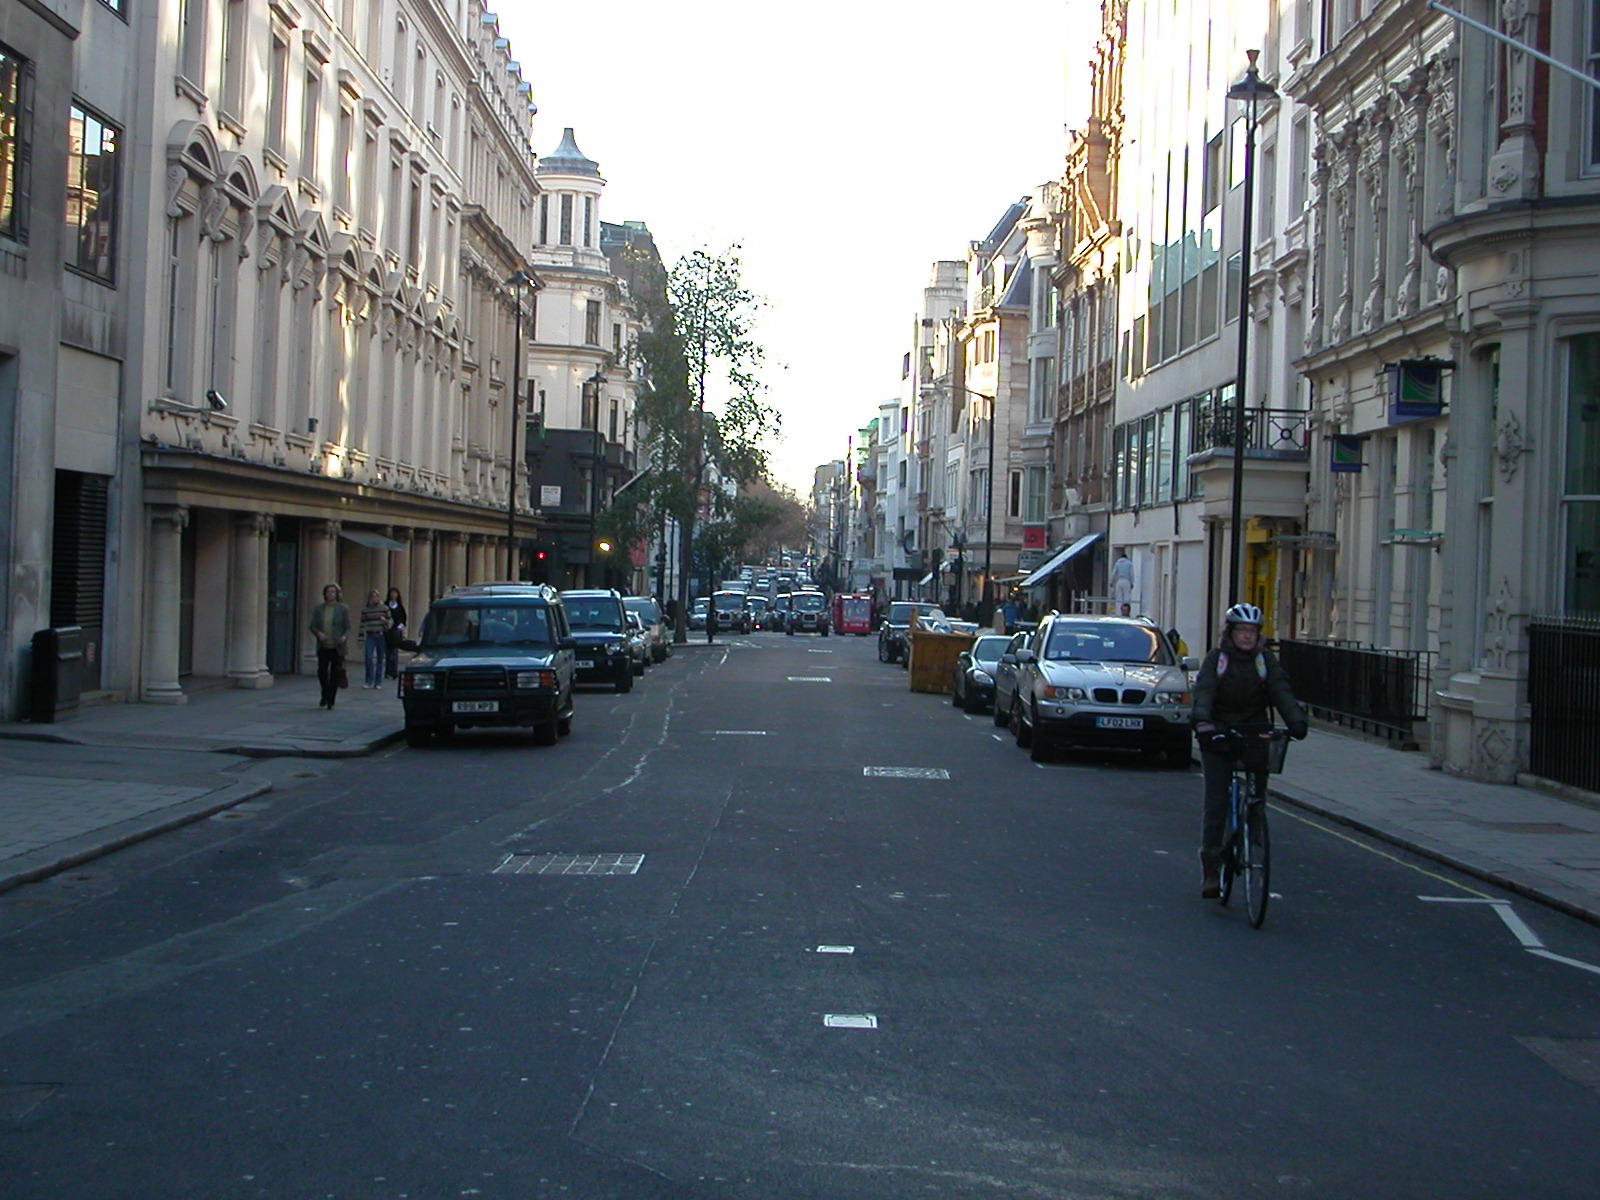 File:Brook Street (W).jpg - Wikipedia, the free encyclopedia Street